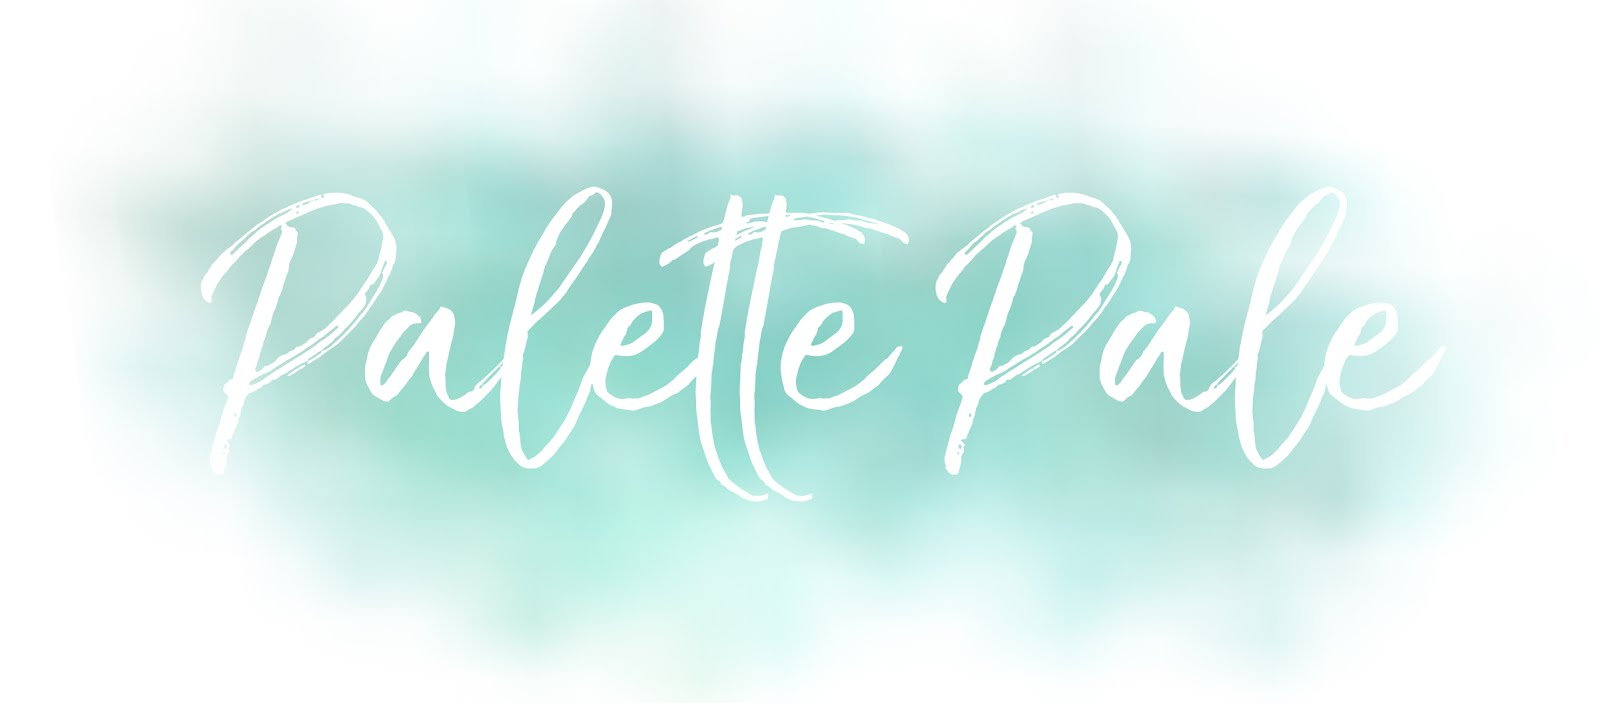 PalettePale - A beauty, fashion and lifestyle blog.